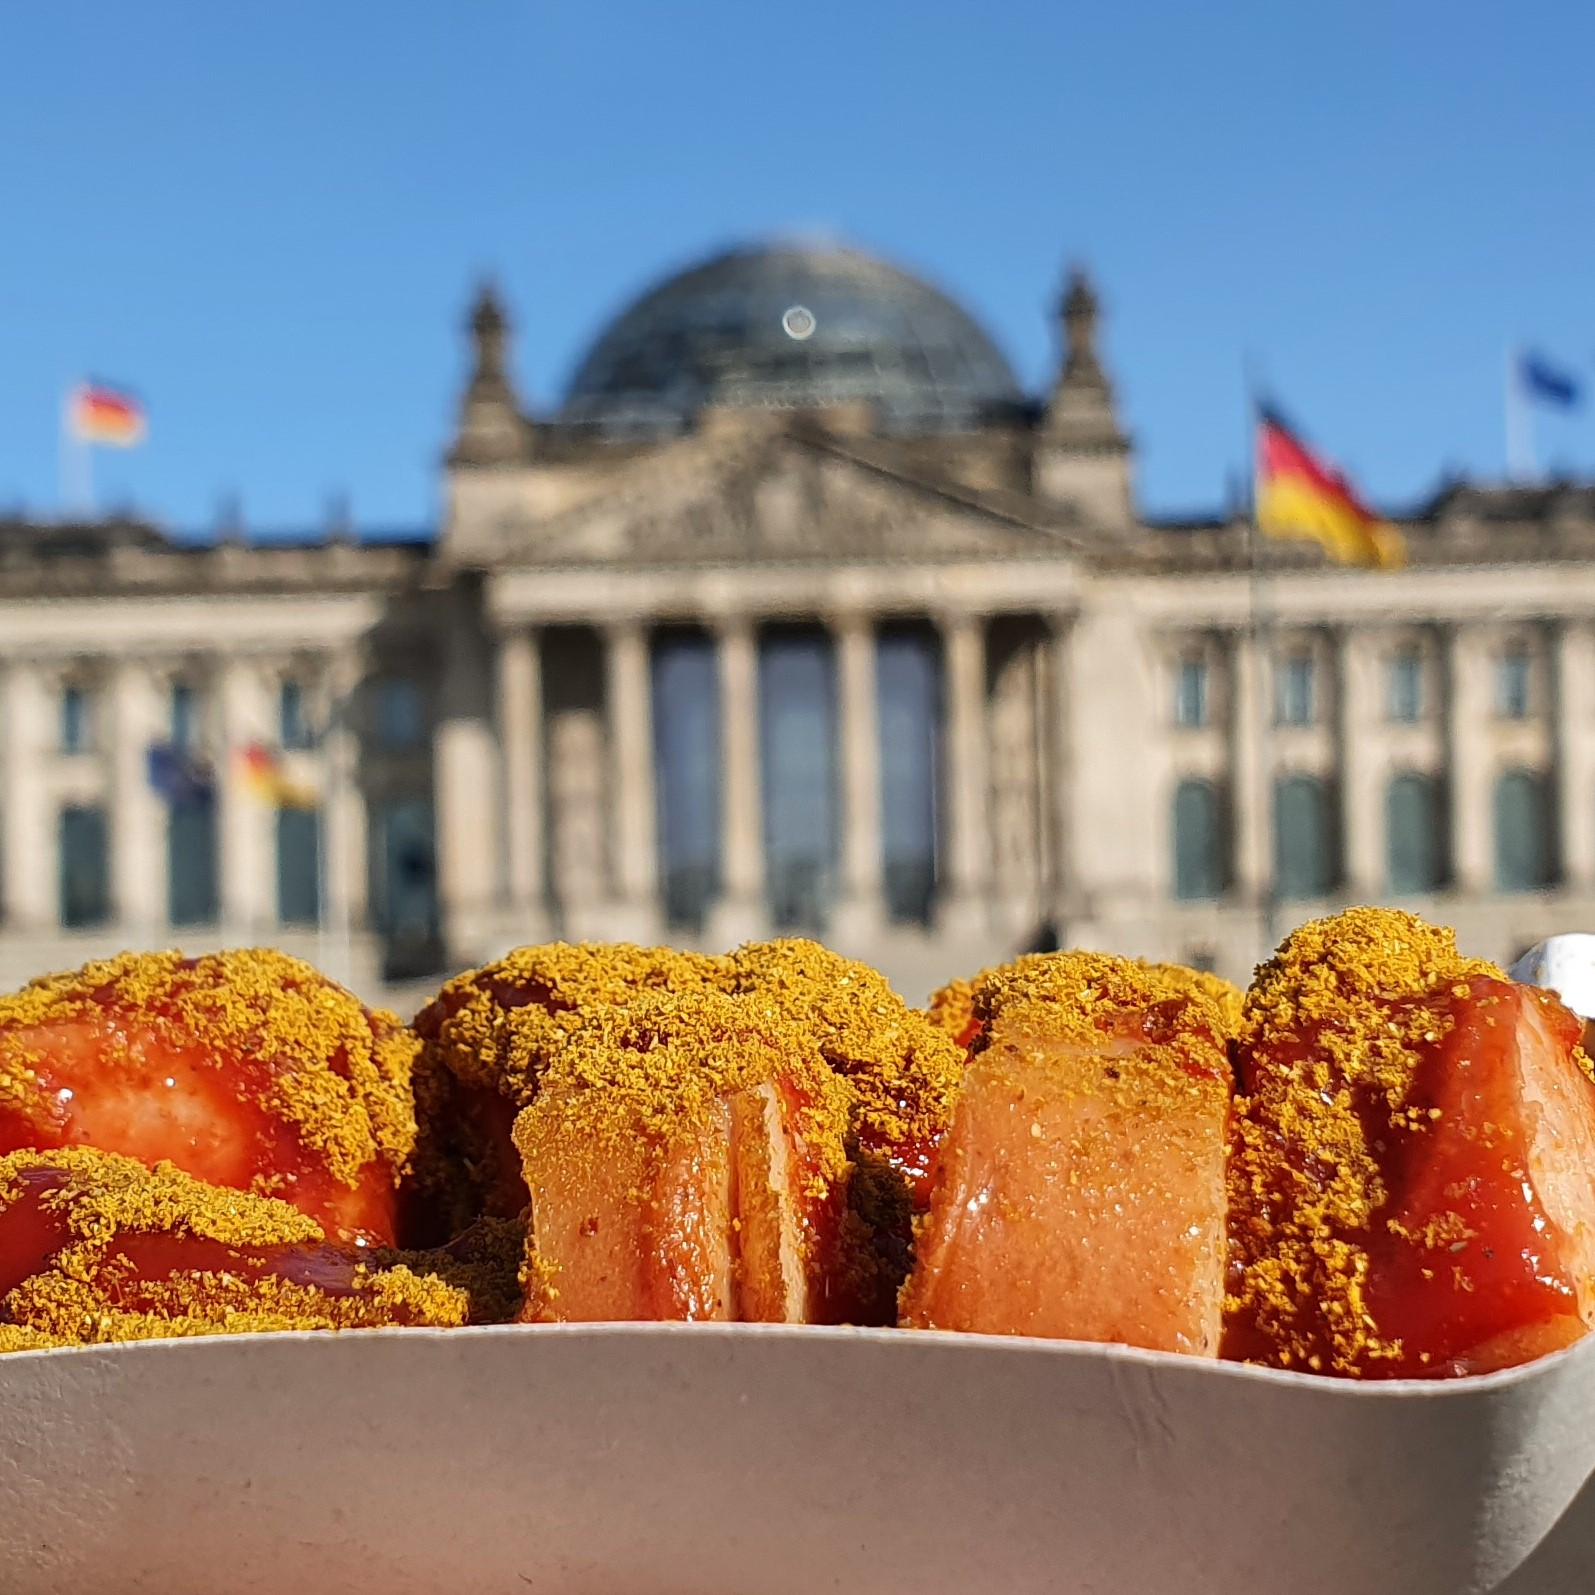 The Best and the Wurst